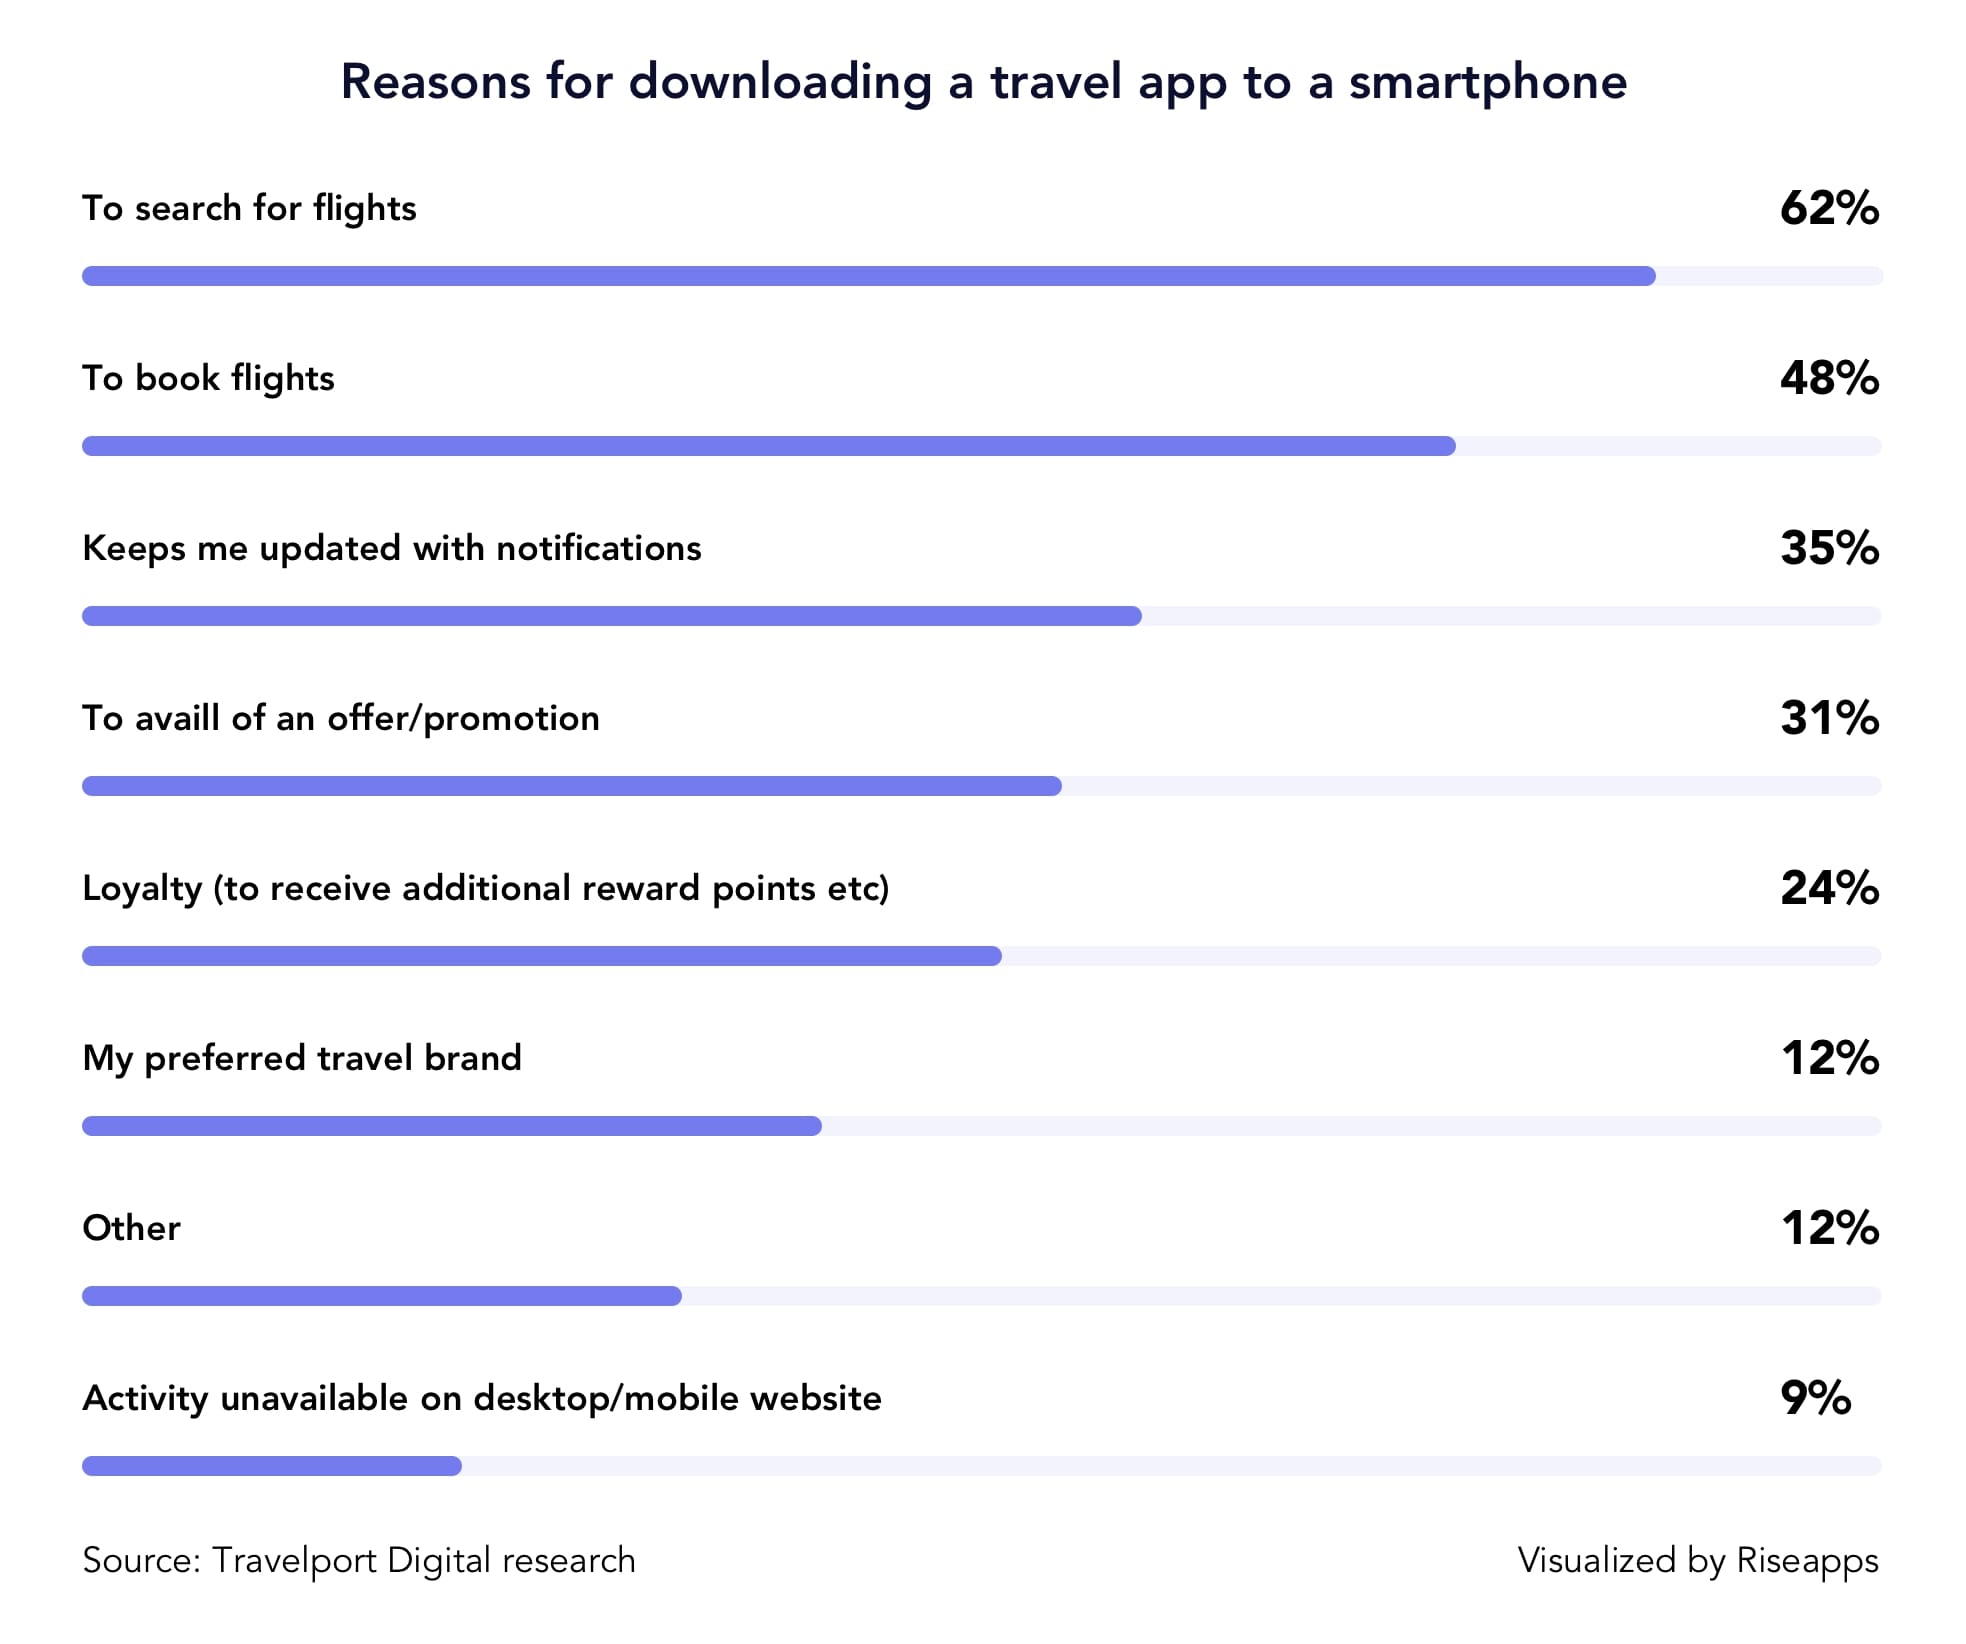 why people download travel apps to their smartphones